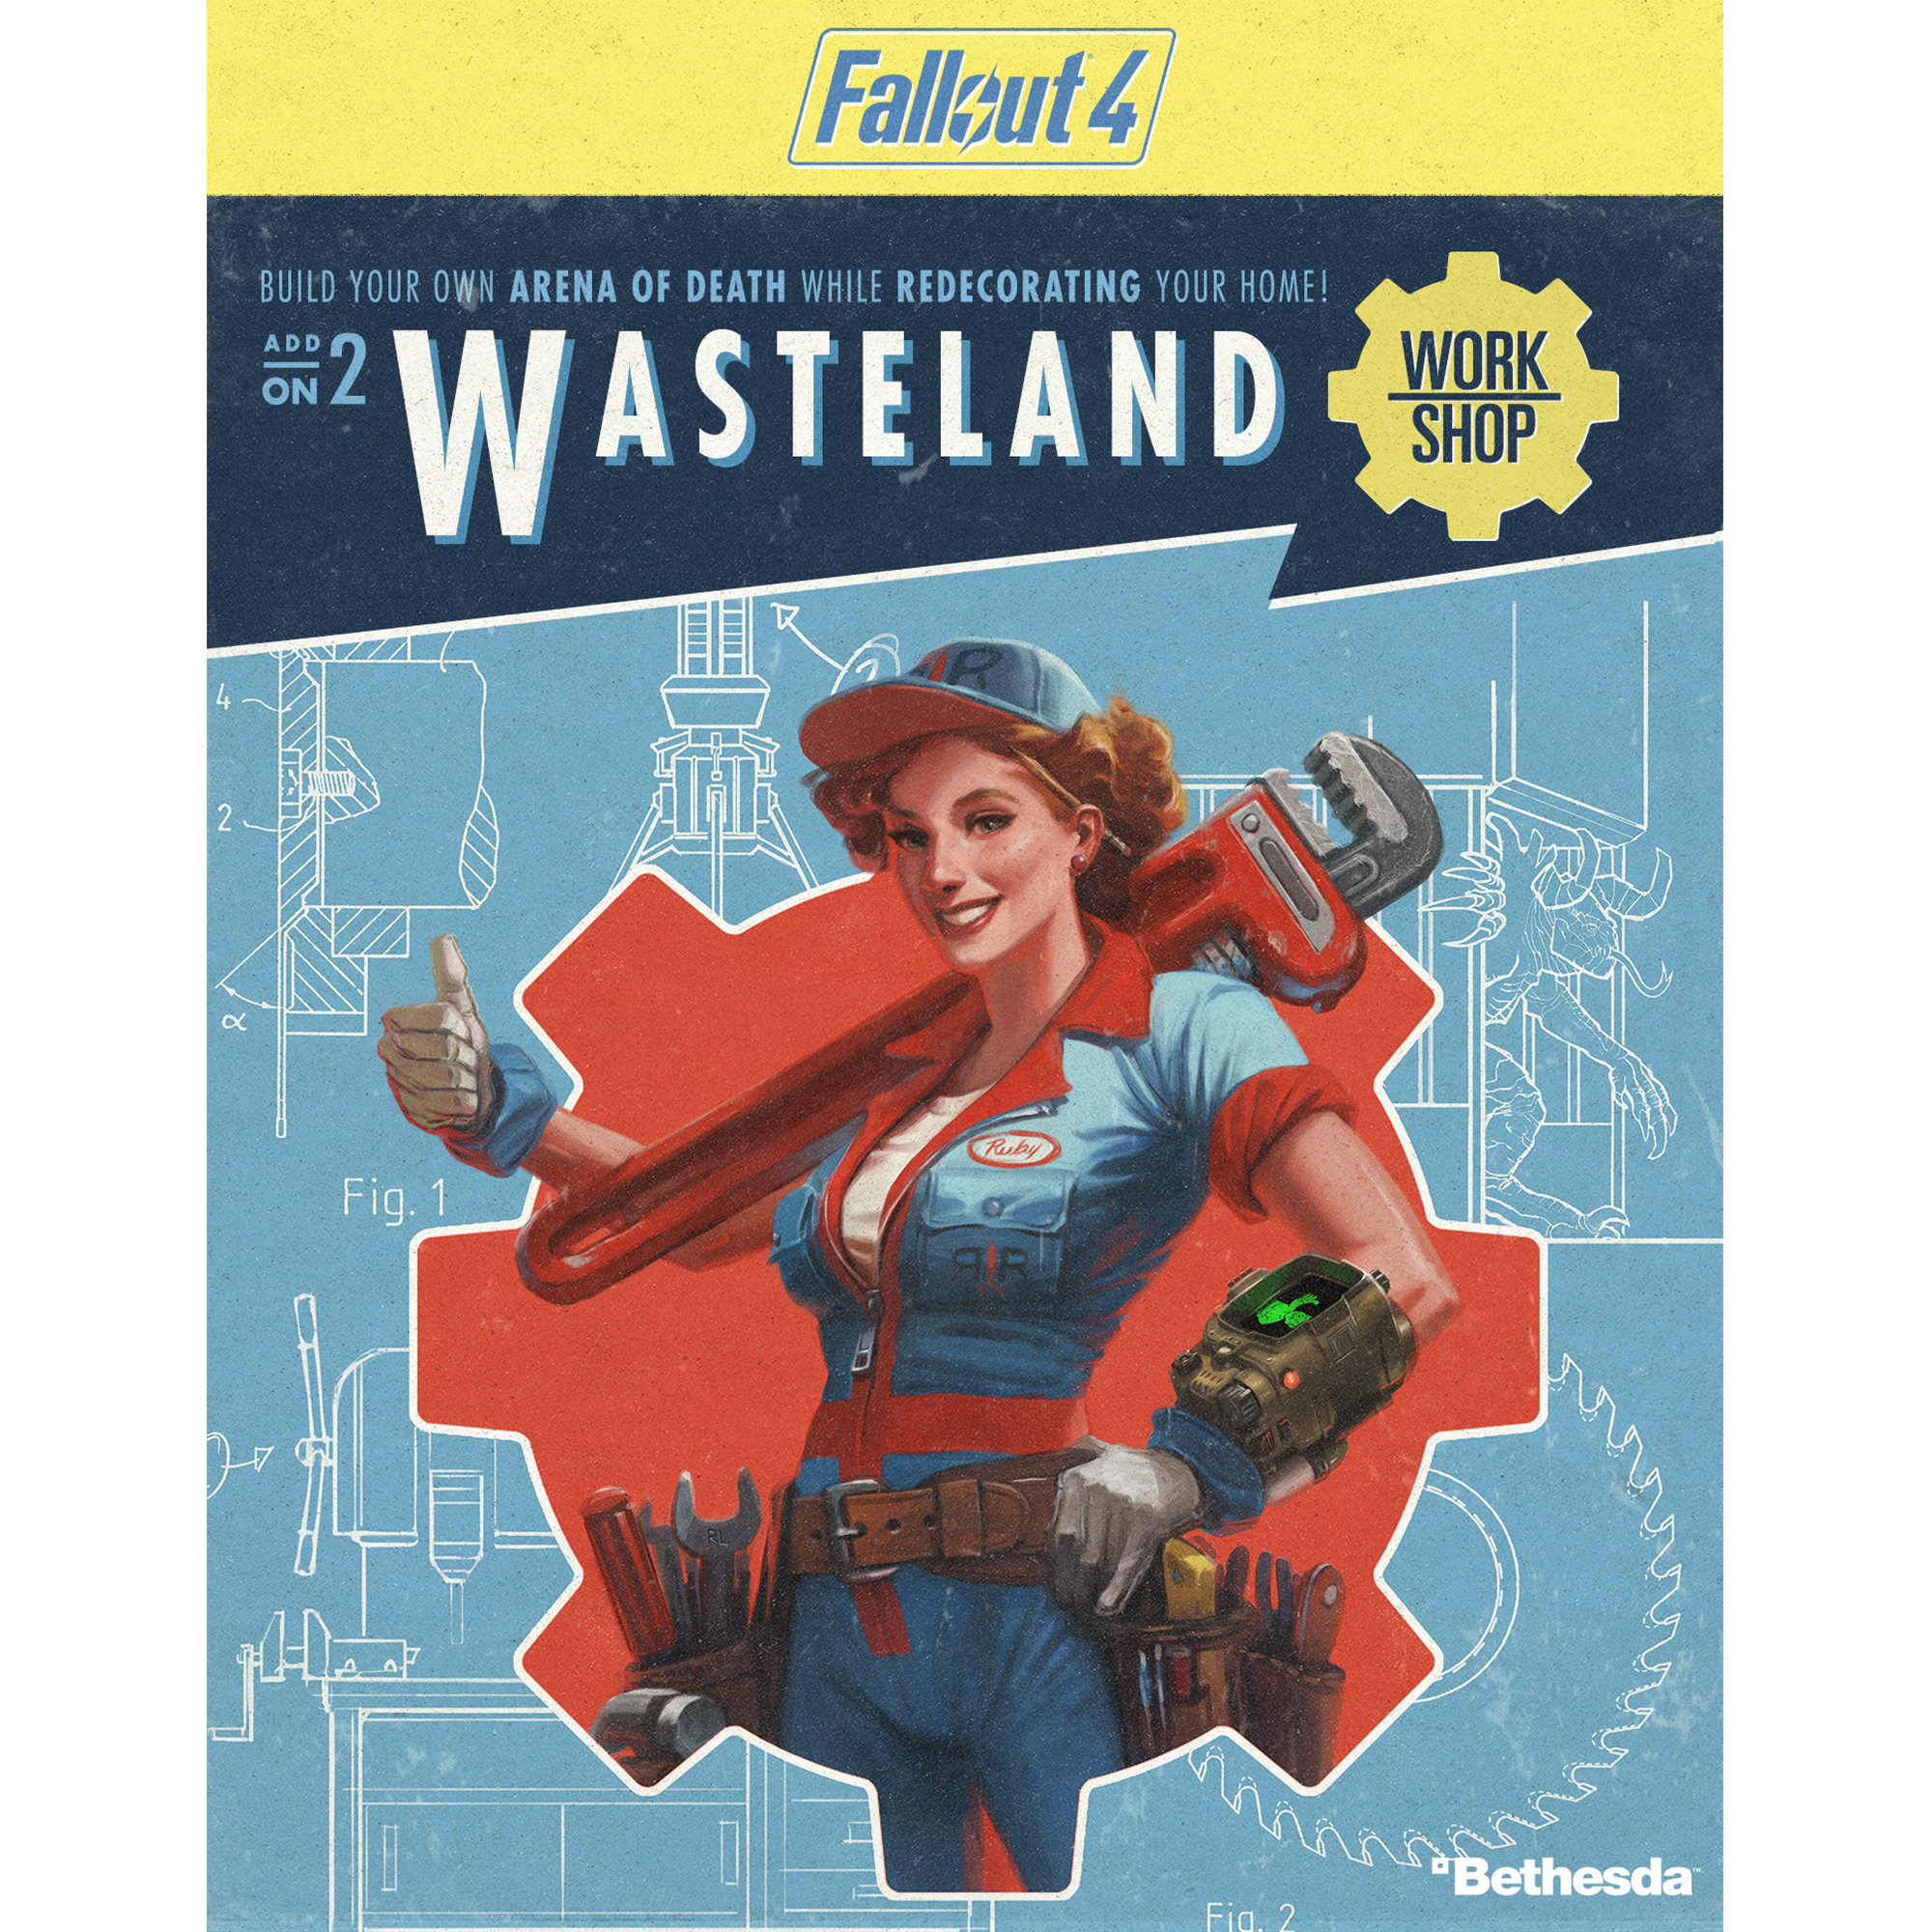 Fallout 4 - Wasteland Workshop DLC (PC) (Email Delivery)